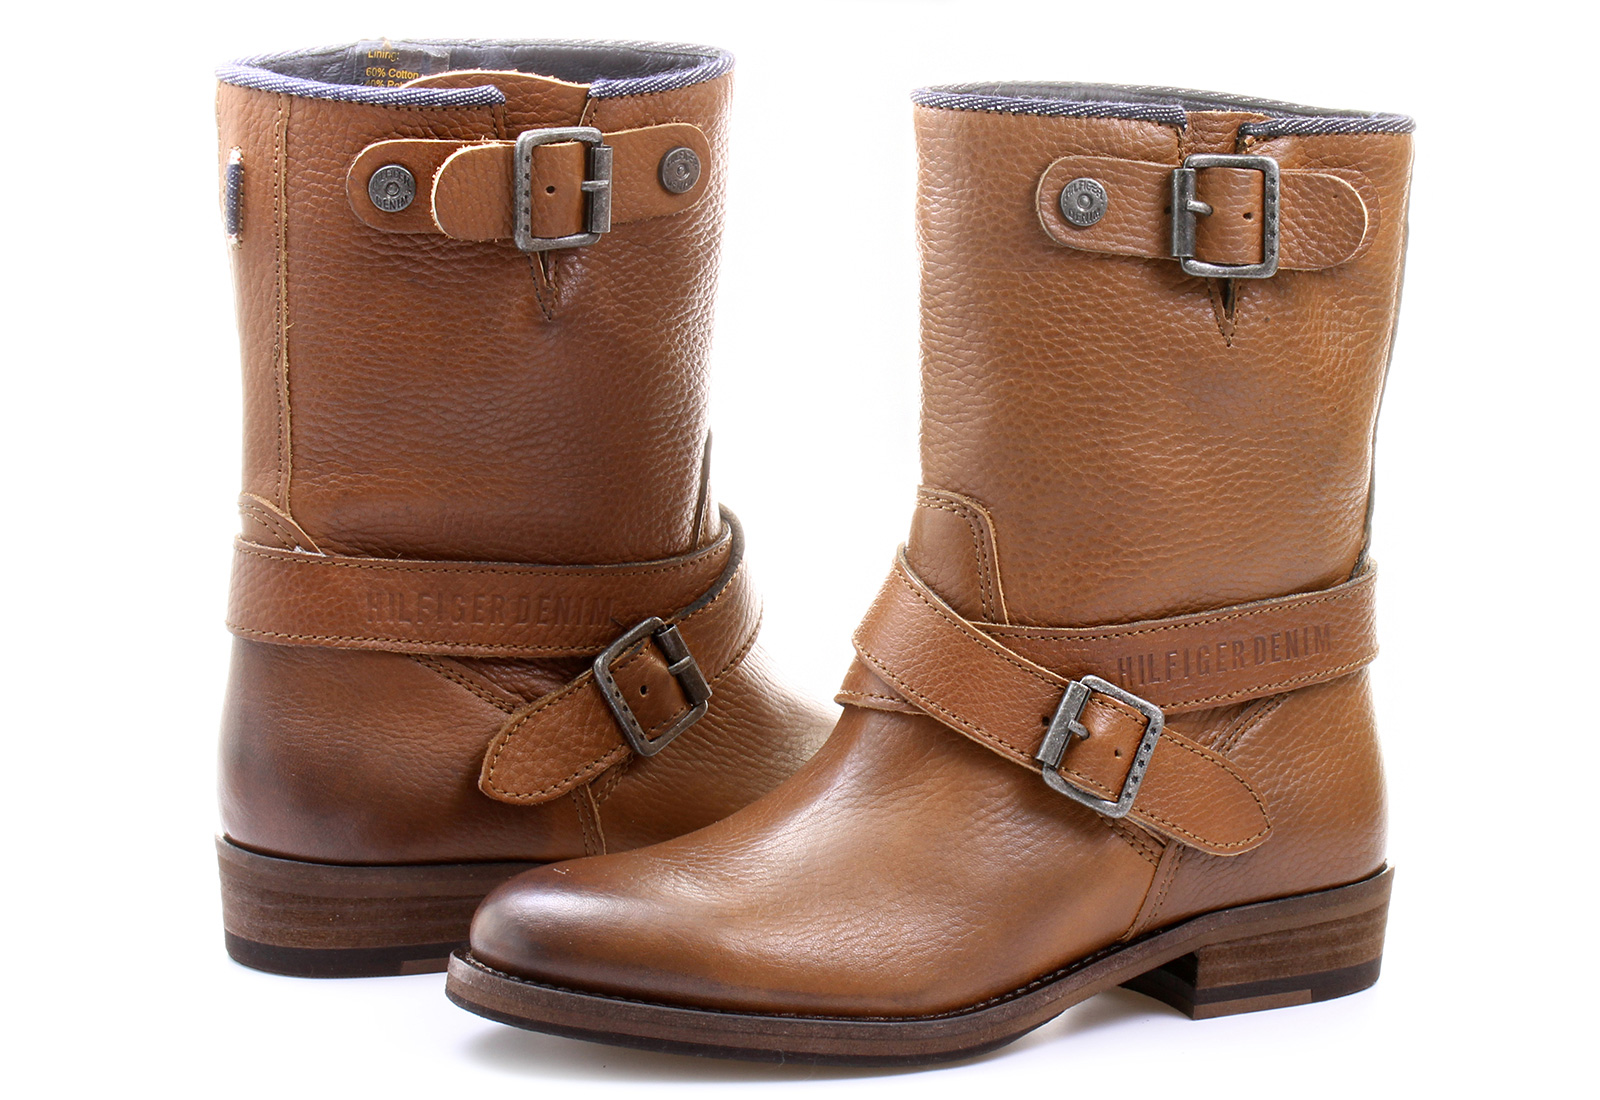 tommy hilfiger boots hudson 10a 13f 6535 606 online shop for sneakers shoes and boots. Black Bedroom Furniture Sets. Home Design Ideas